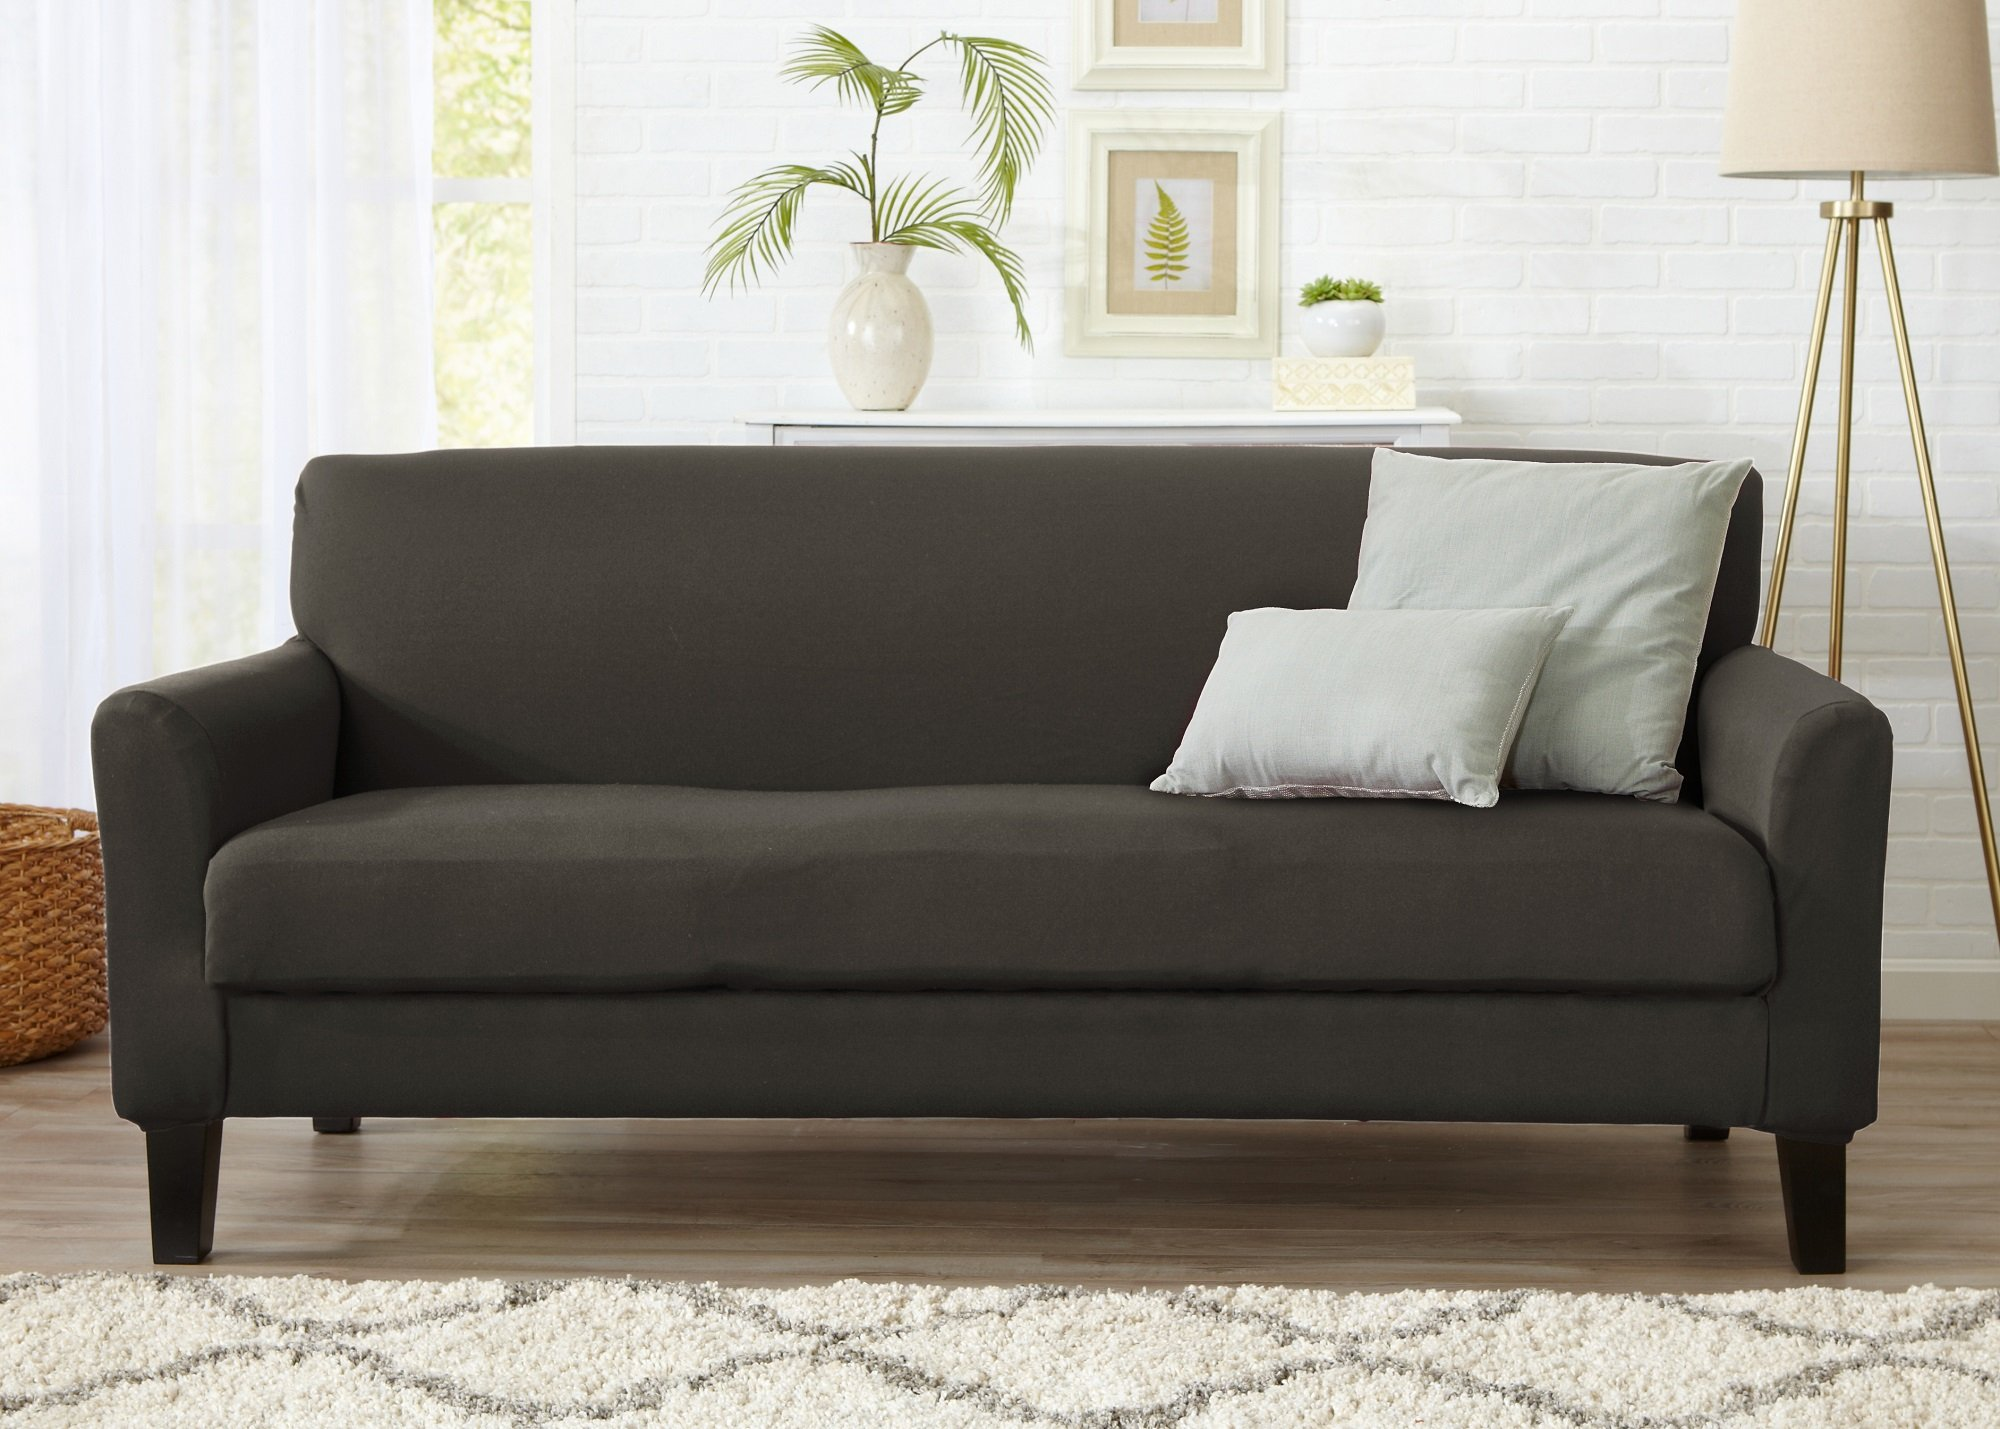 Home Fashion Designs Form Fit Stretch, Stylish Furniture Cover/Protector Featuring Lightweight Twill Fabric. Dawson Collection Basic Strapless Slipcover by Brand. (Sofa, Cloudburst Grey)